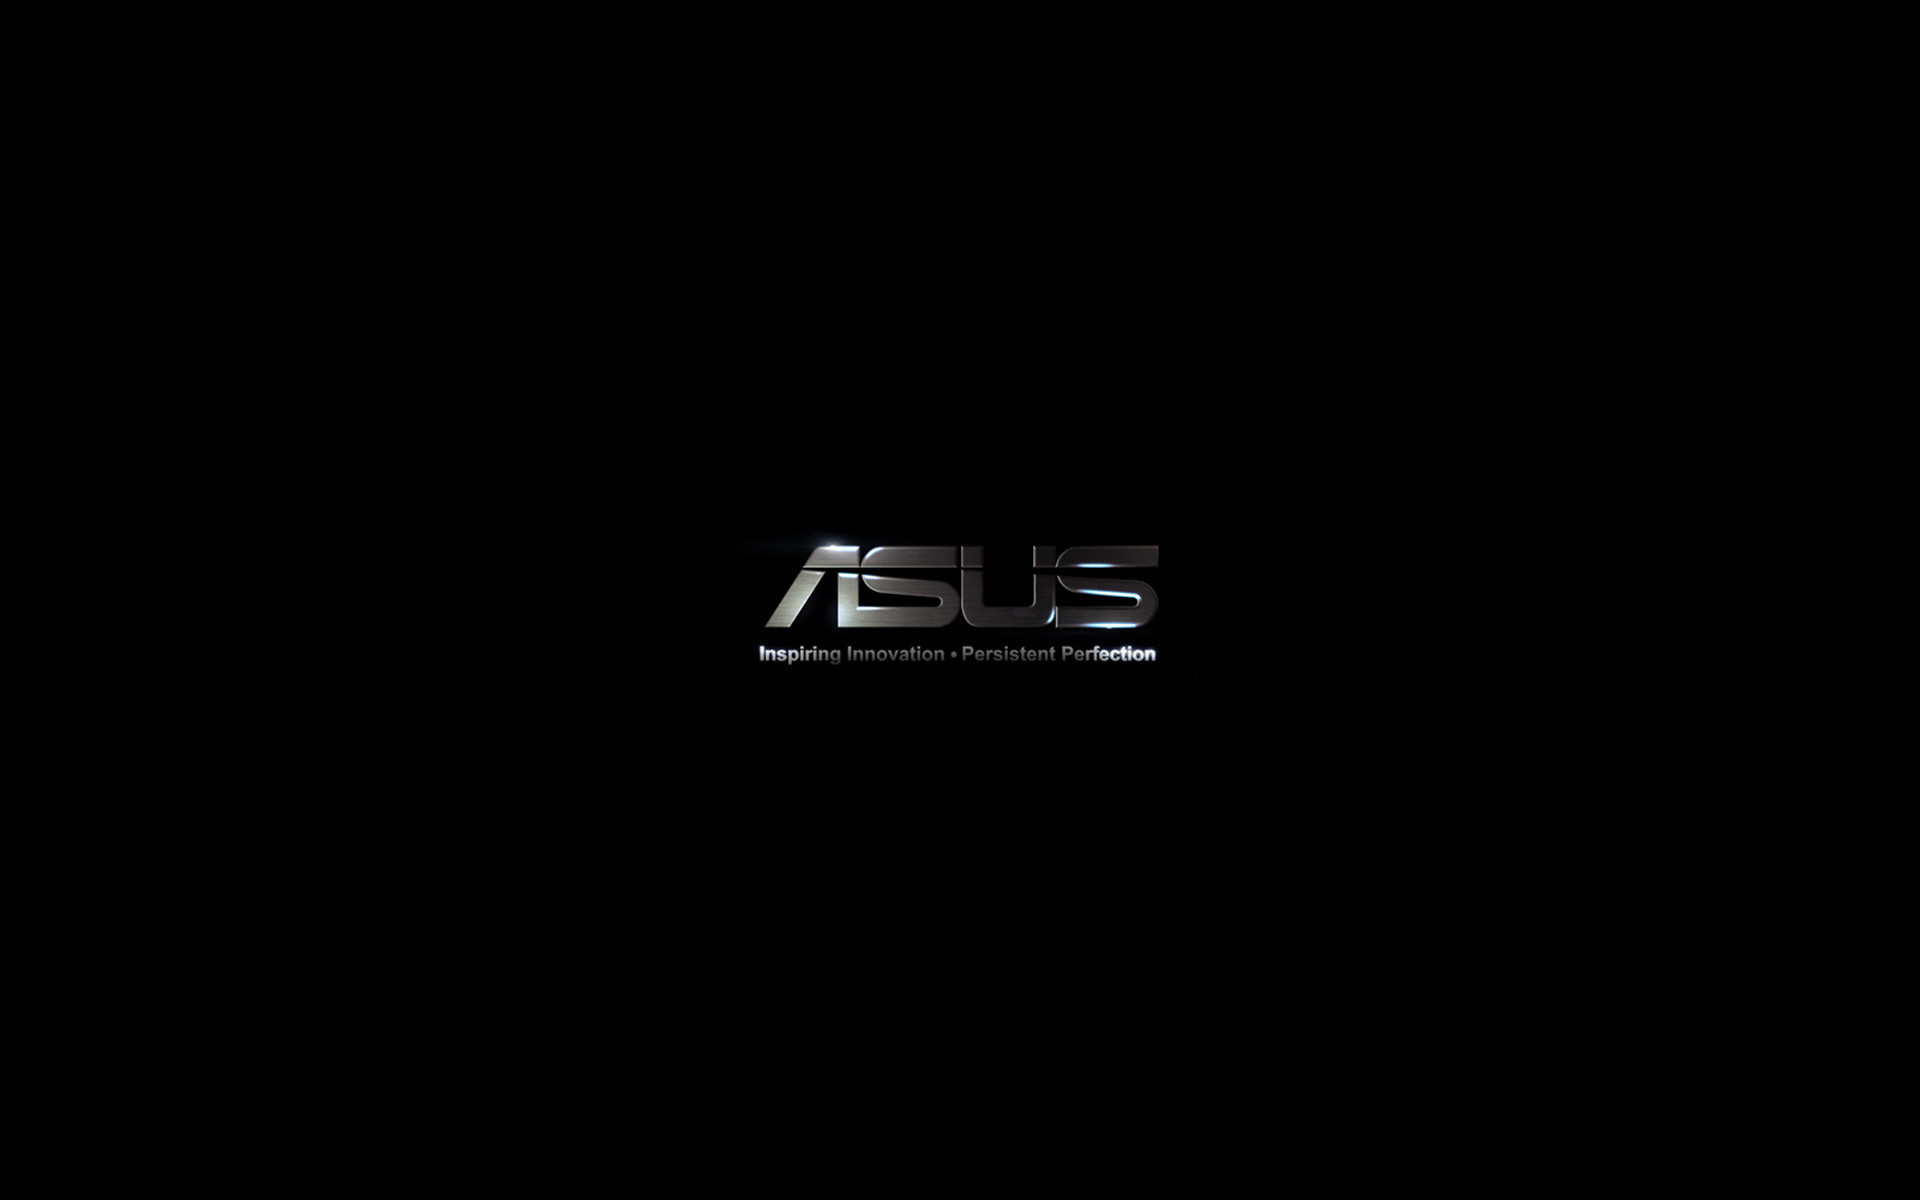 Asus Hd Wallpaper 87 Pictures